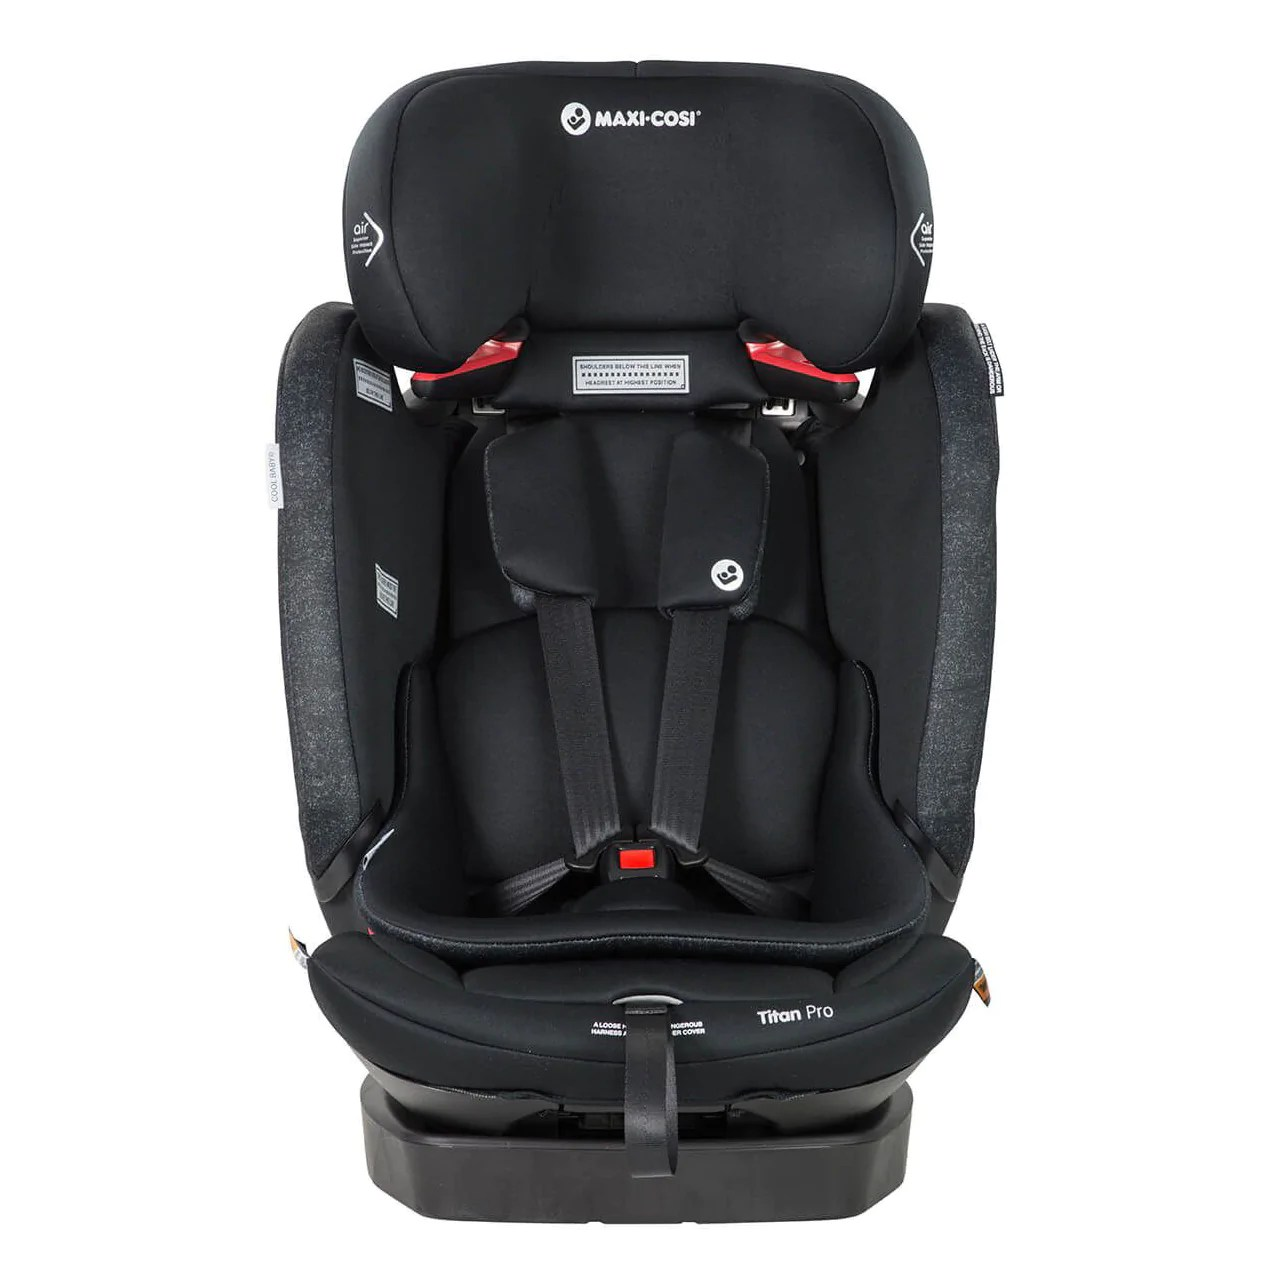 Maxi Baby Name Maxi Cosi Titan Pro Convertible Booster Seat Nomad Black Available To Order